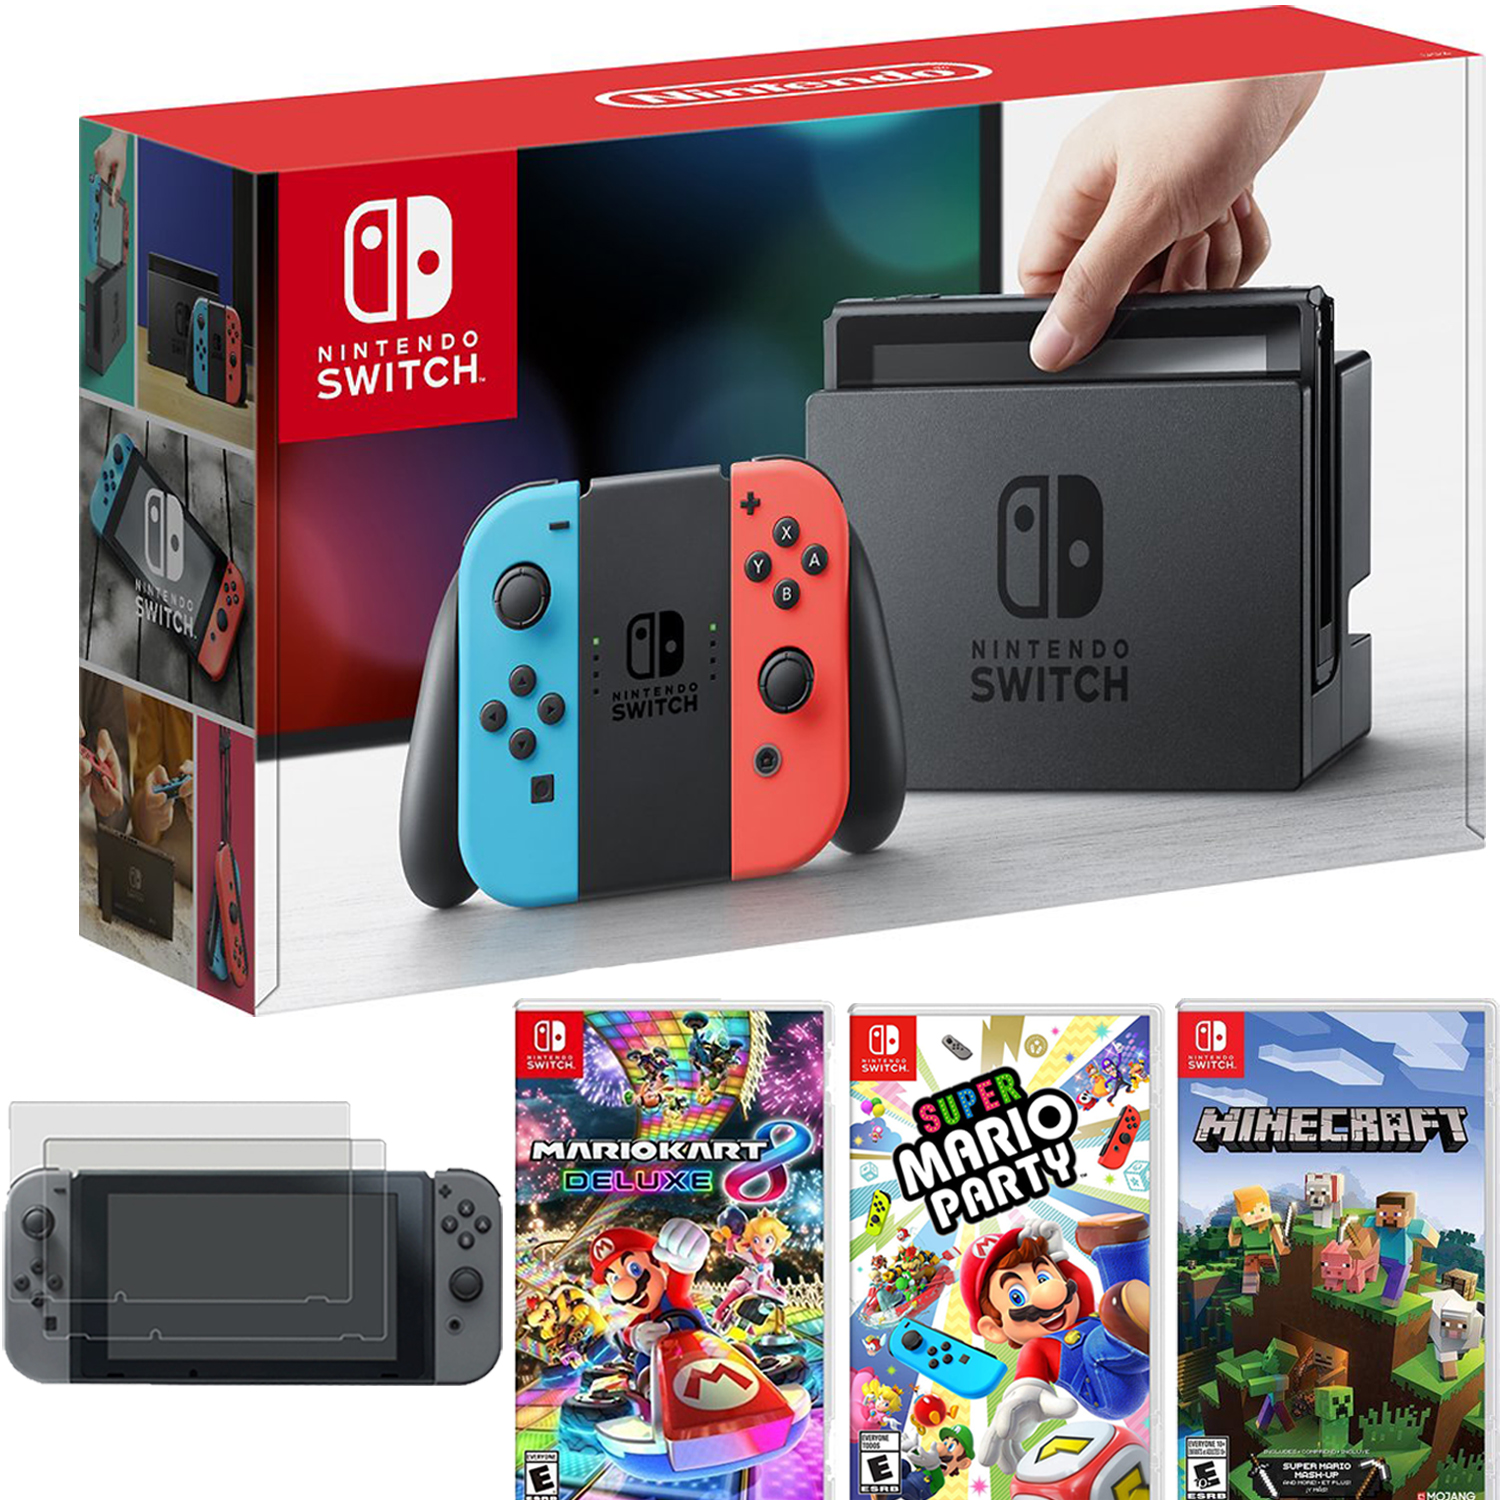 Nintendo Switch Console Blue Red Joy Con Mario Kart 8 Deluxe